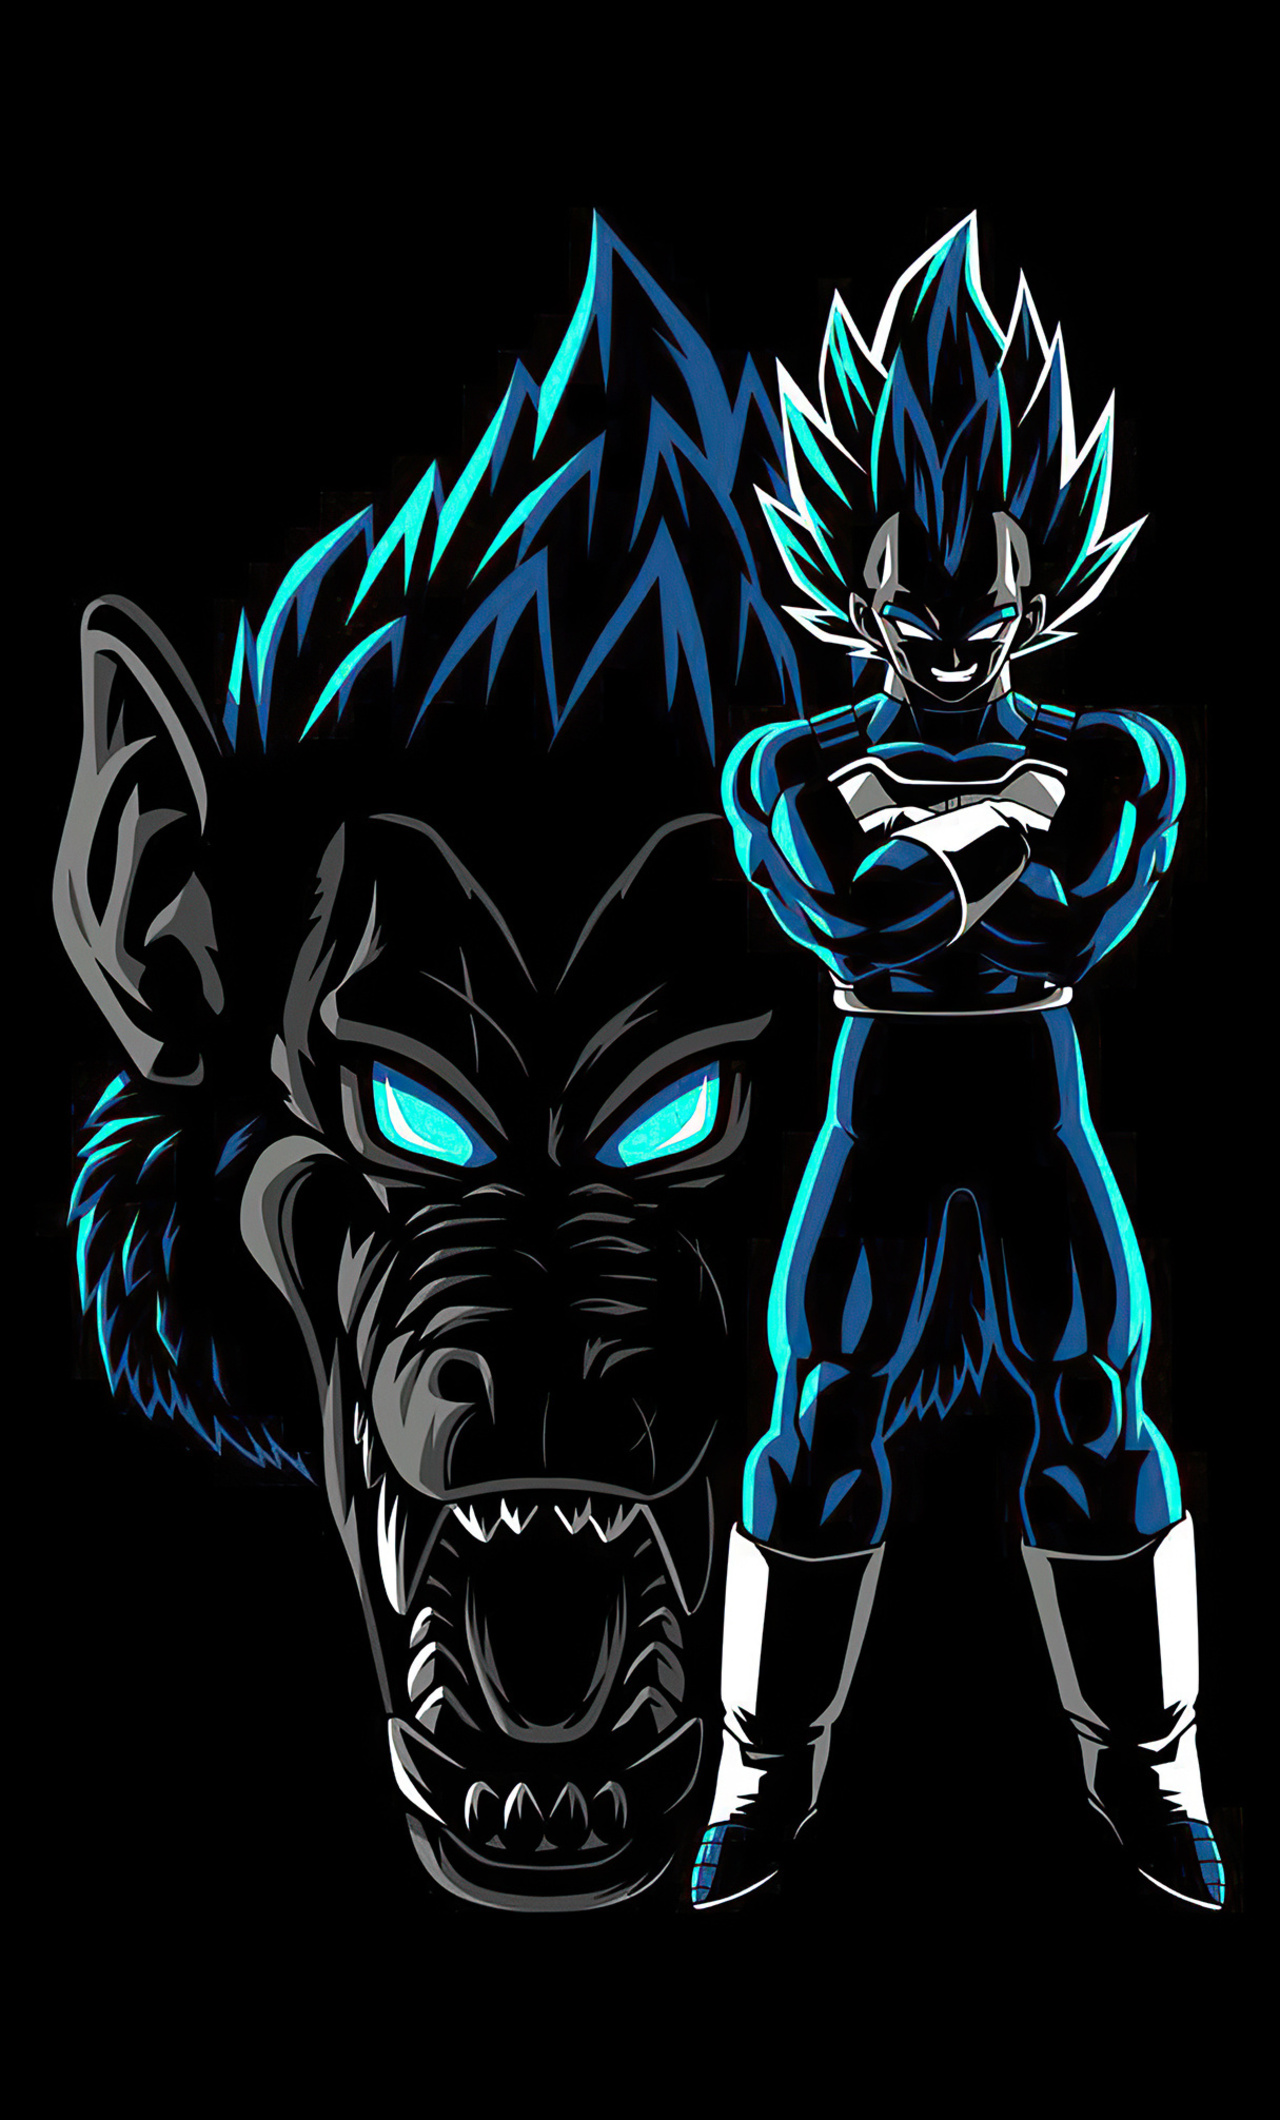 1280x2120 Dragon Ball Z Ozaru Vegeta Blue 4k Iphone 6 Hd 4k Wallpapers Images Backgrounds Photos And Pictures